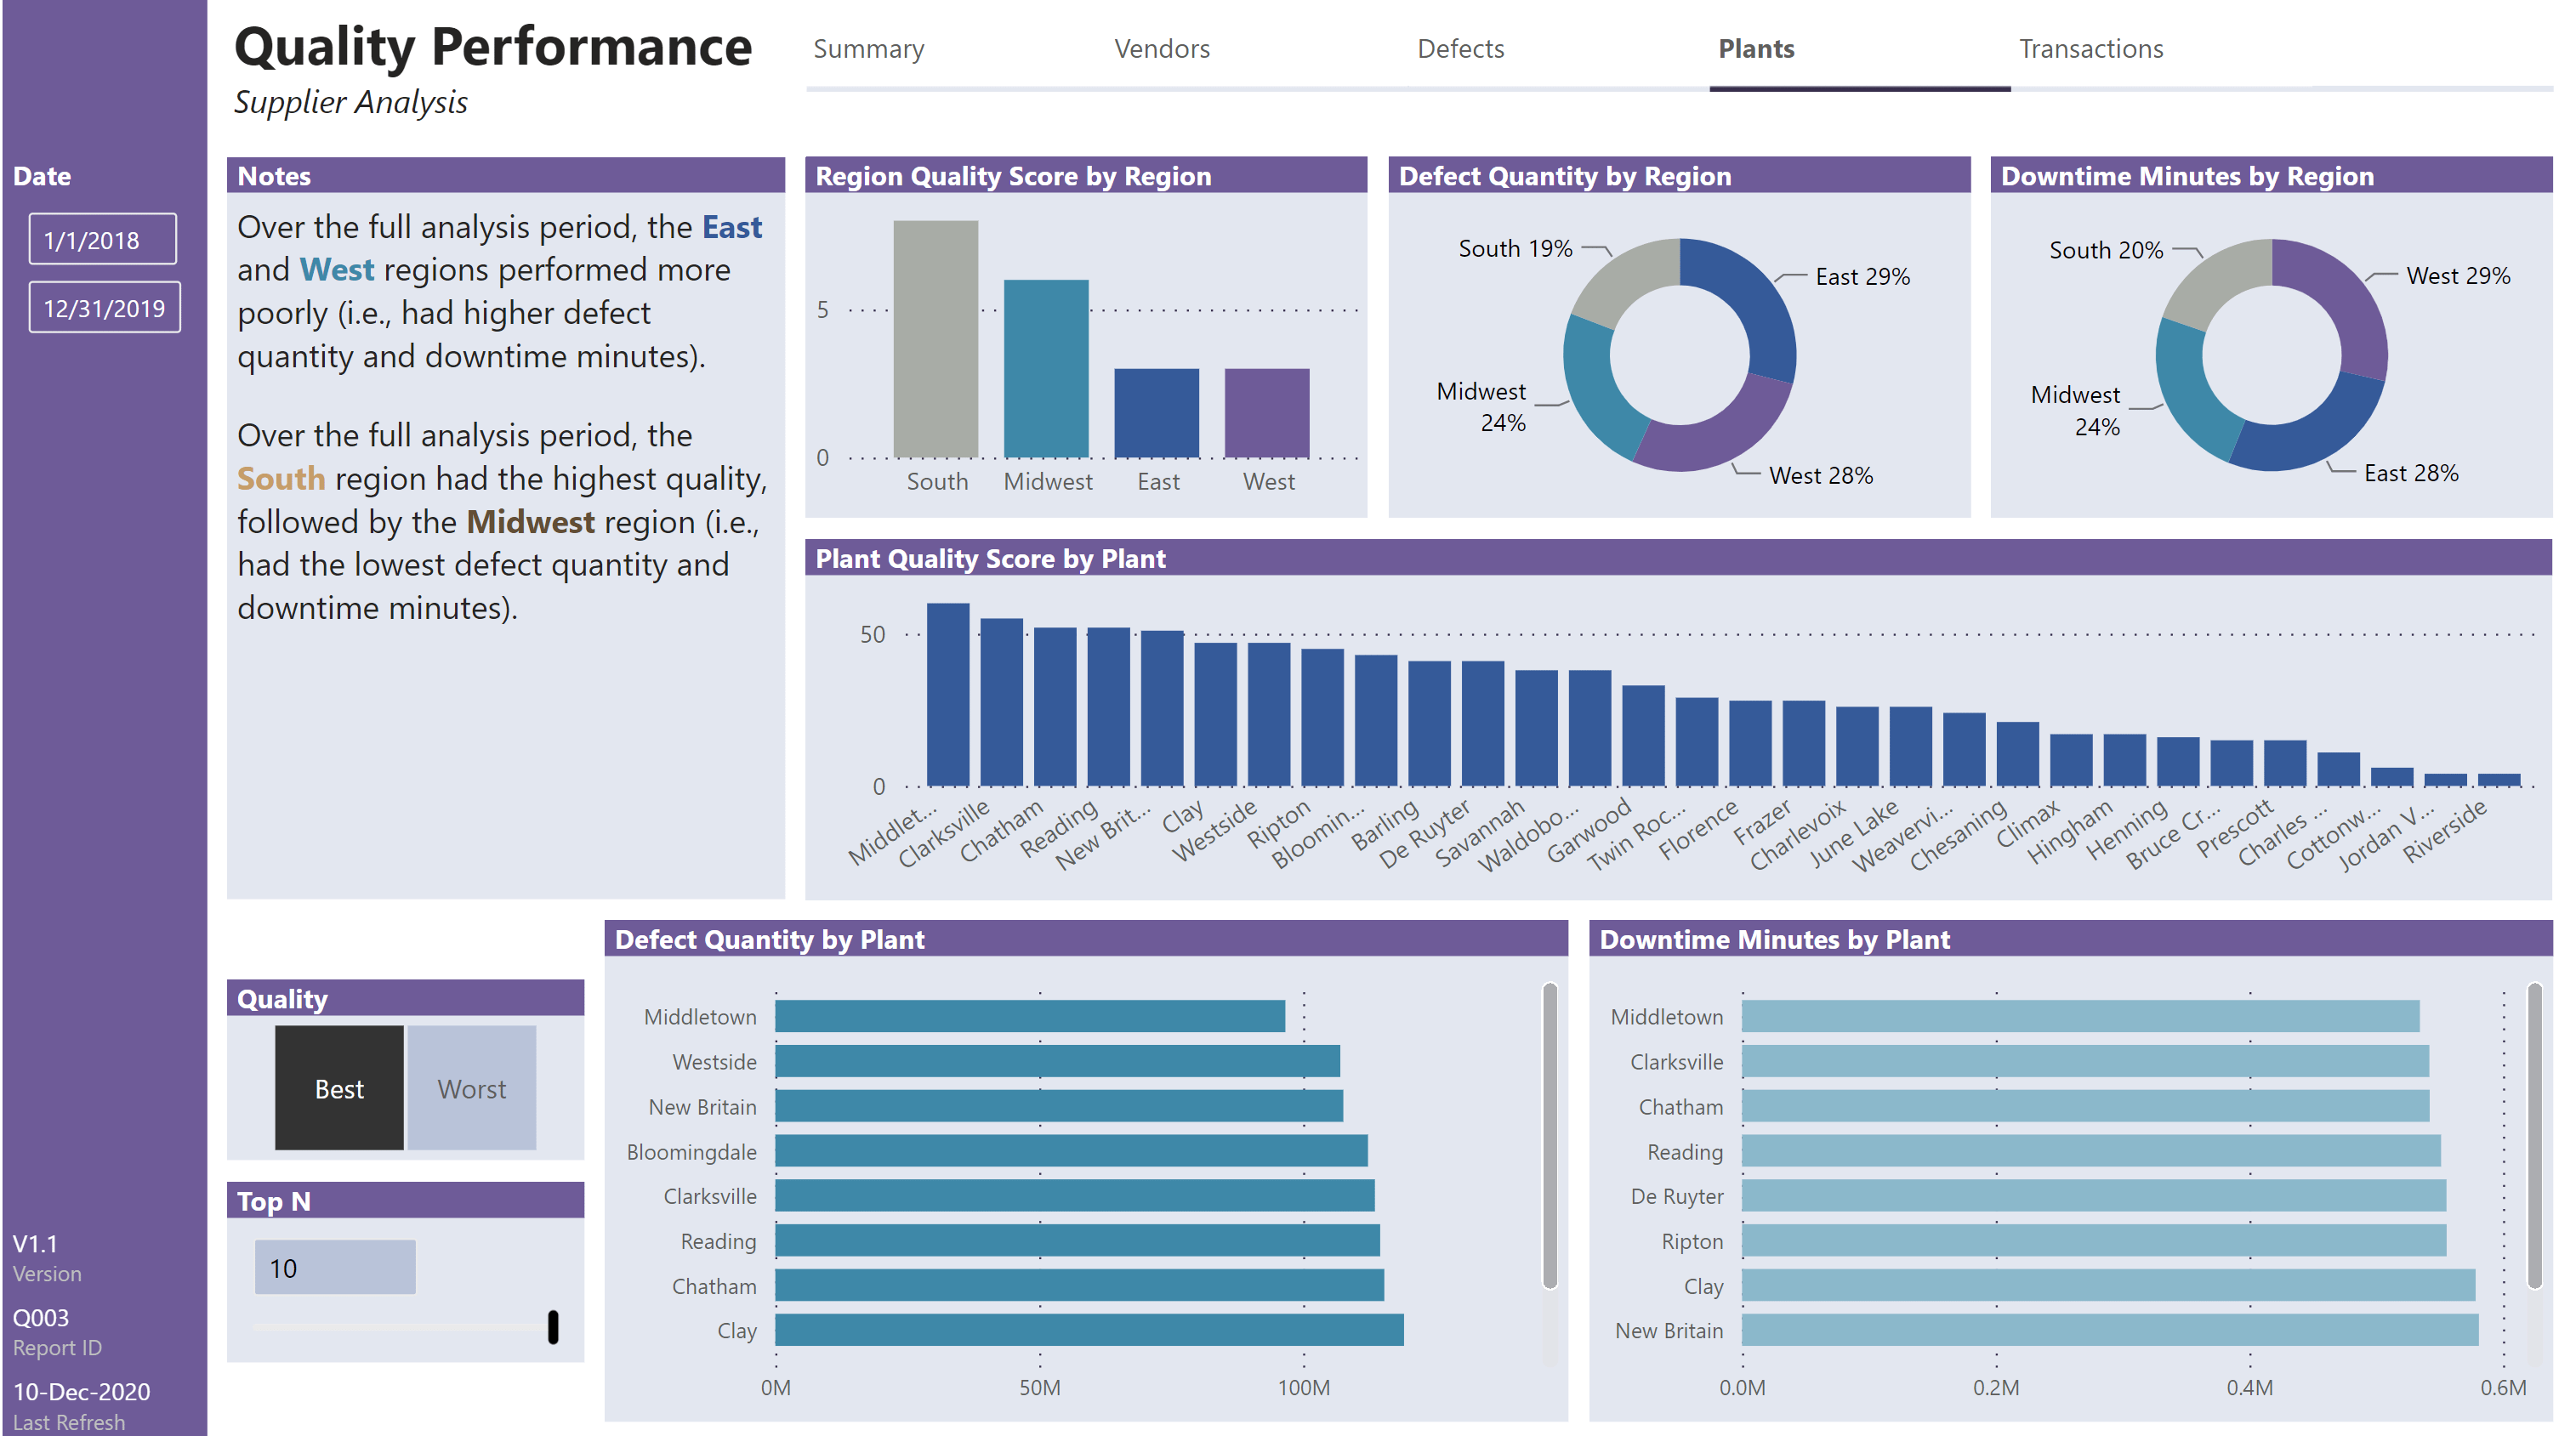 Supplier Analysis - Quality Performance